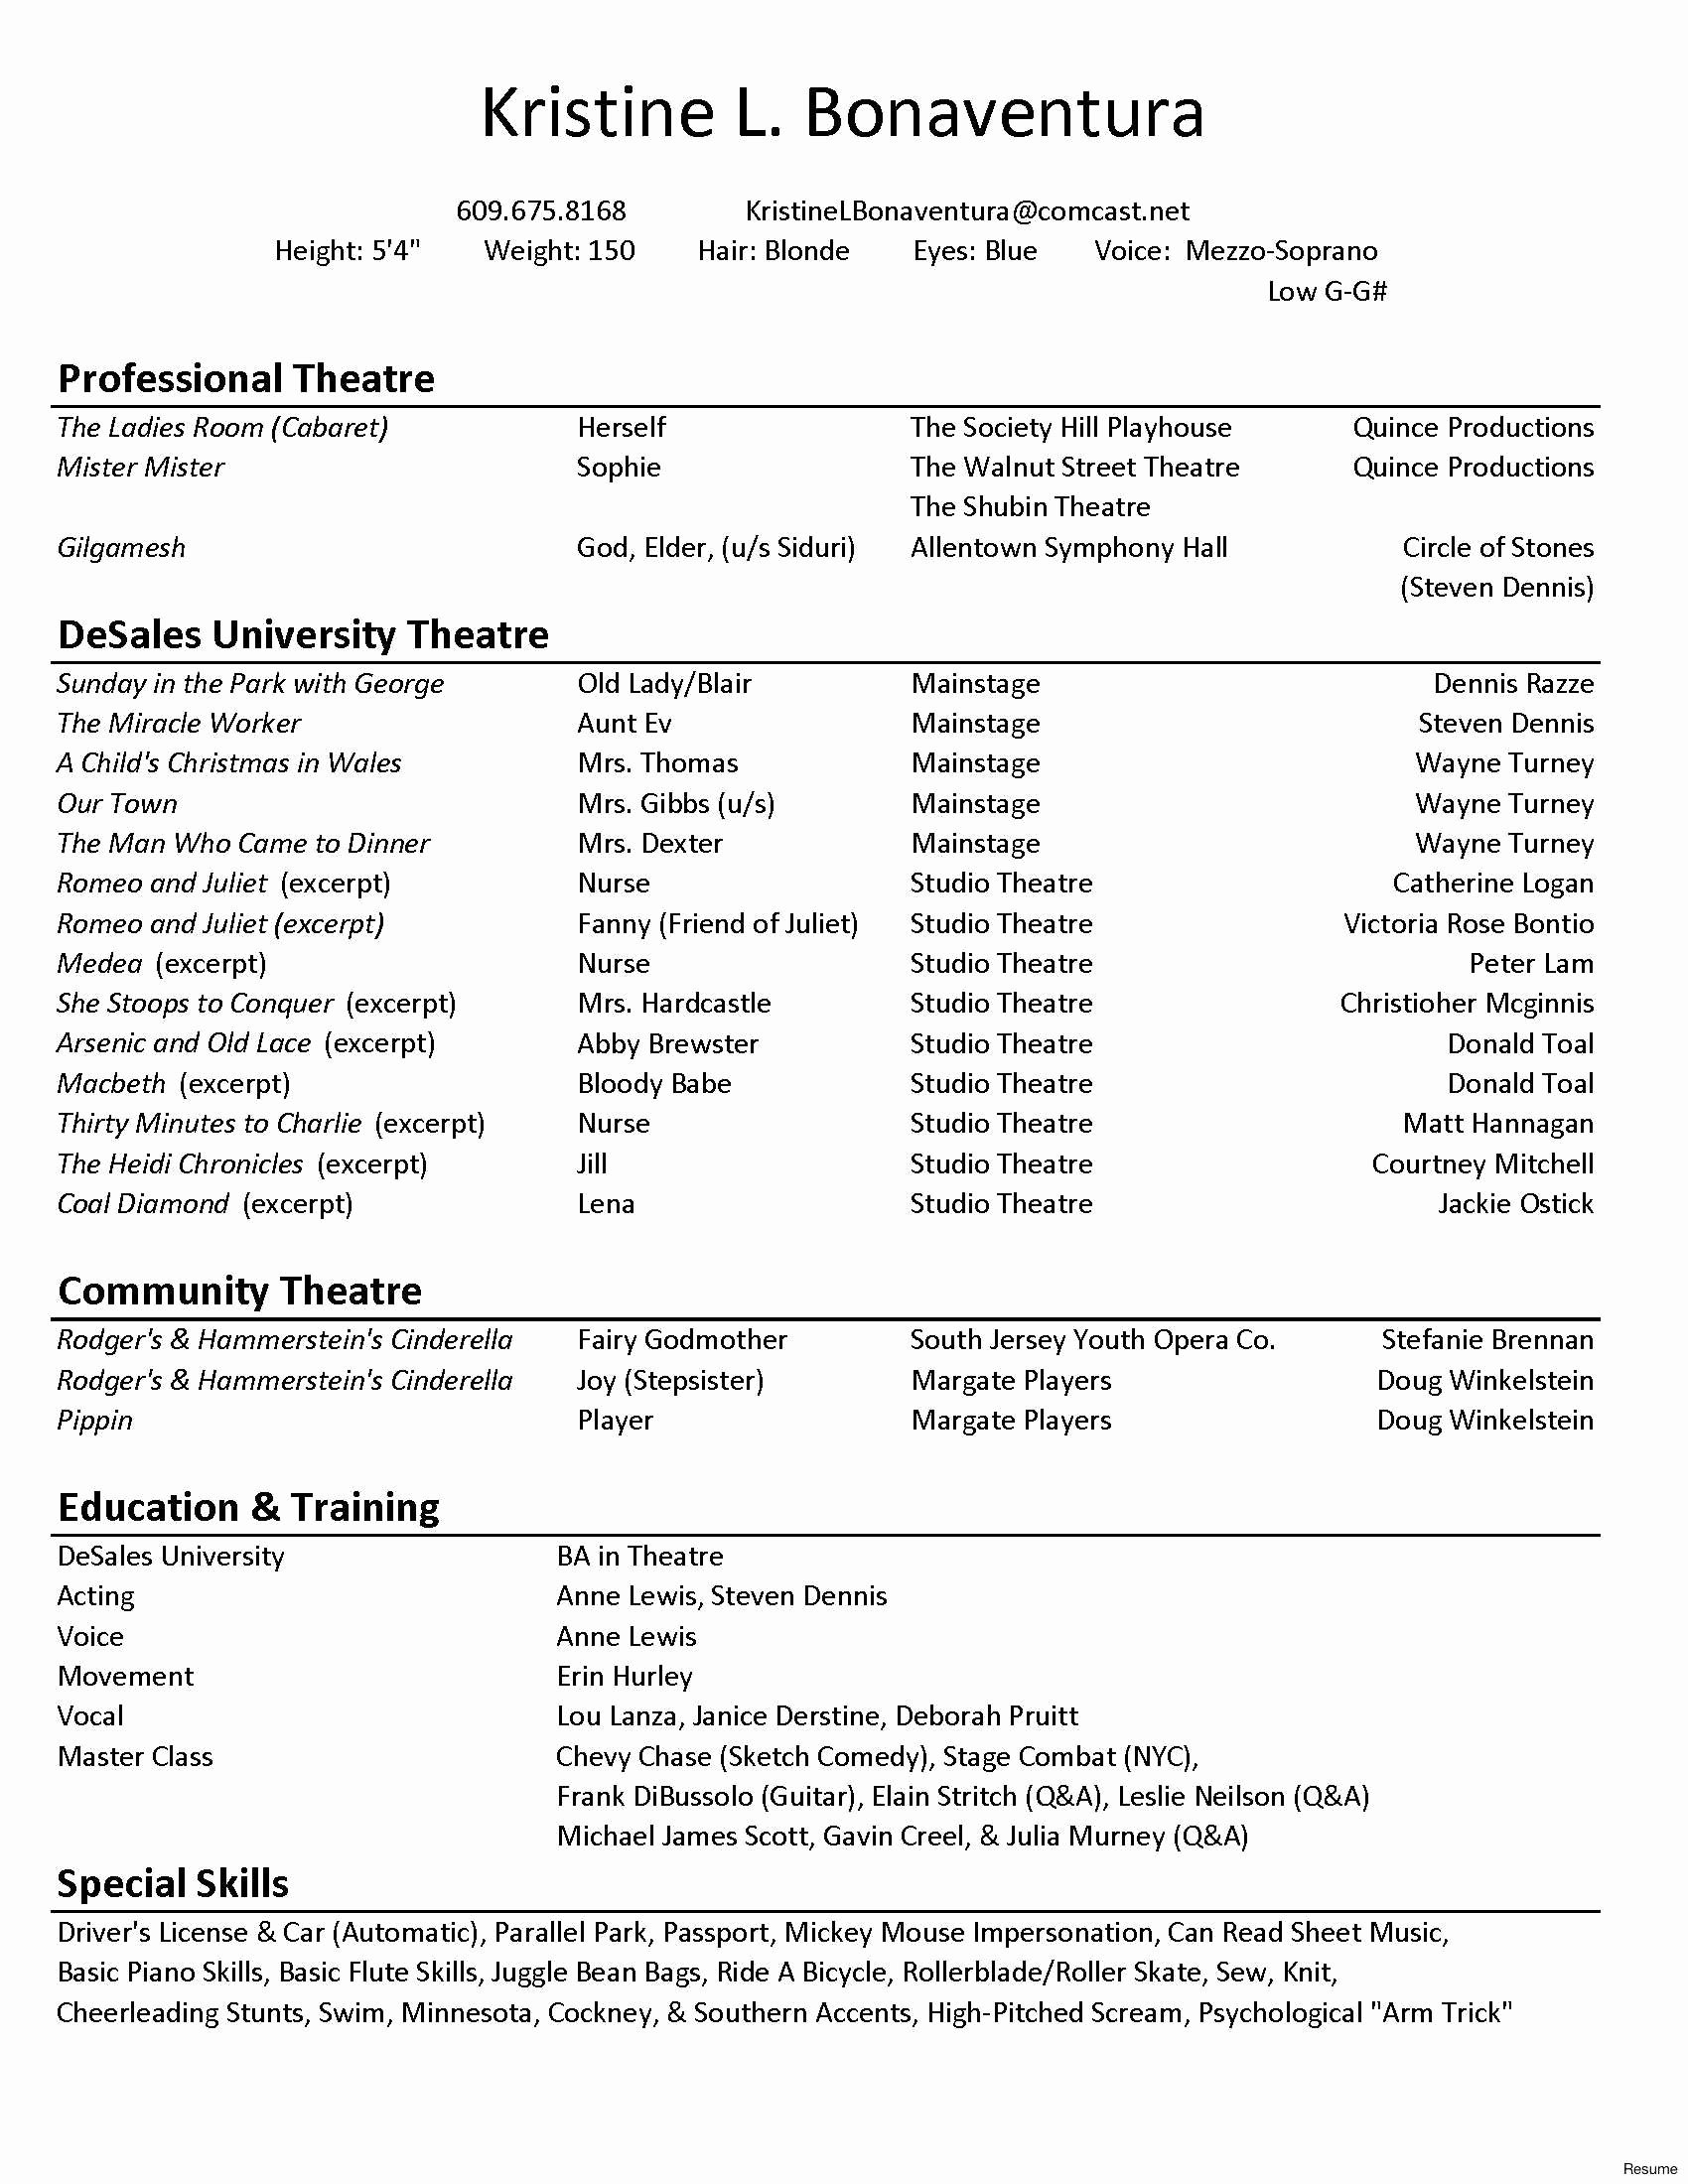 Technical theatre Resume Template Inspirational Technical theatre Resume Template